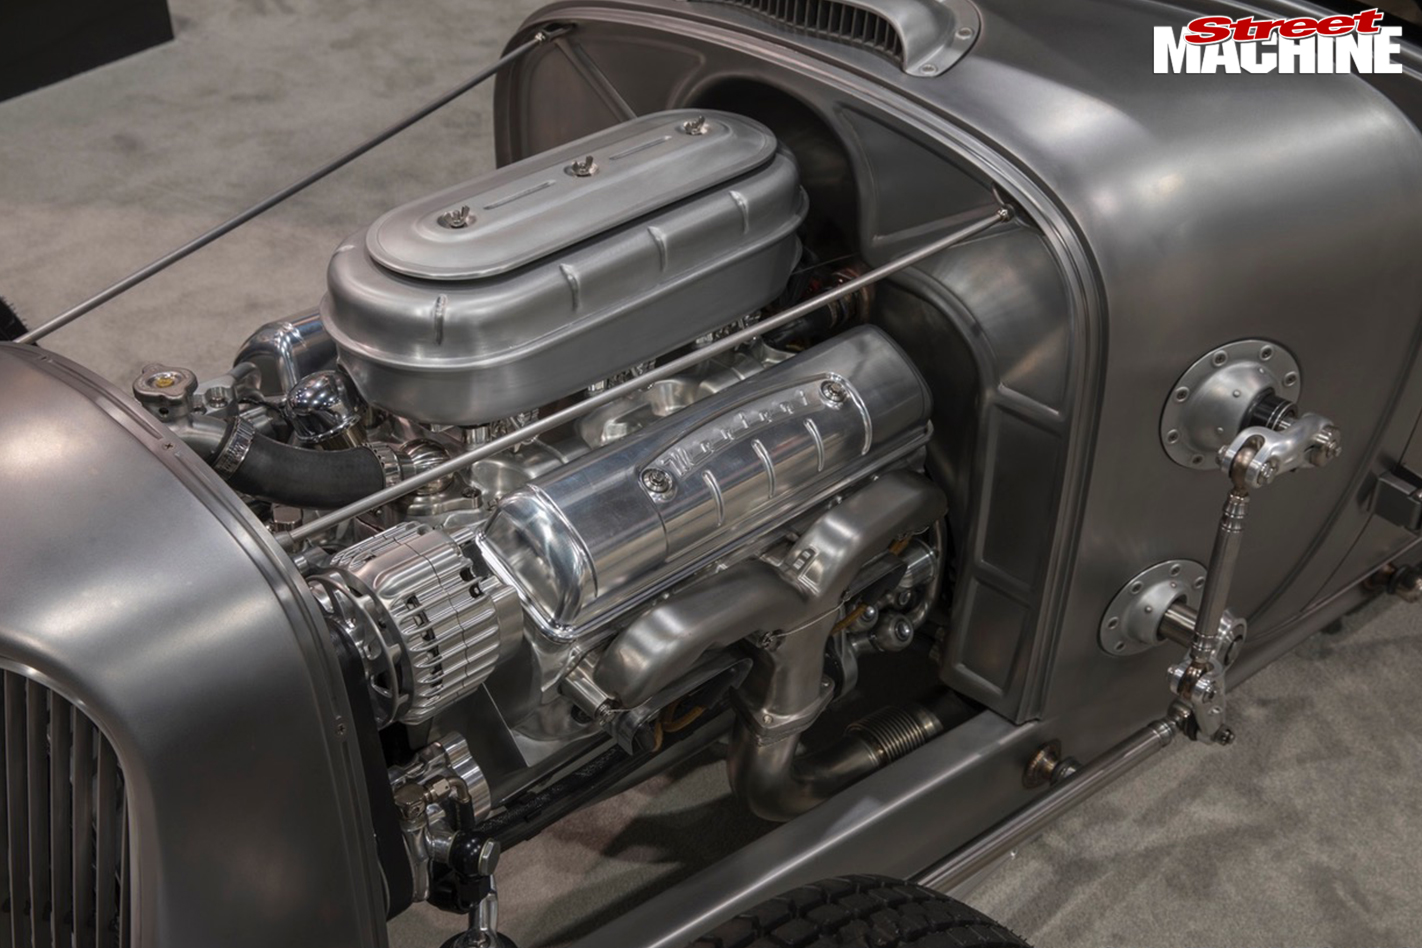 RL59002-ford -coupe -hot -rod -engine